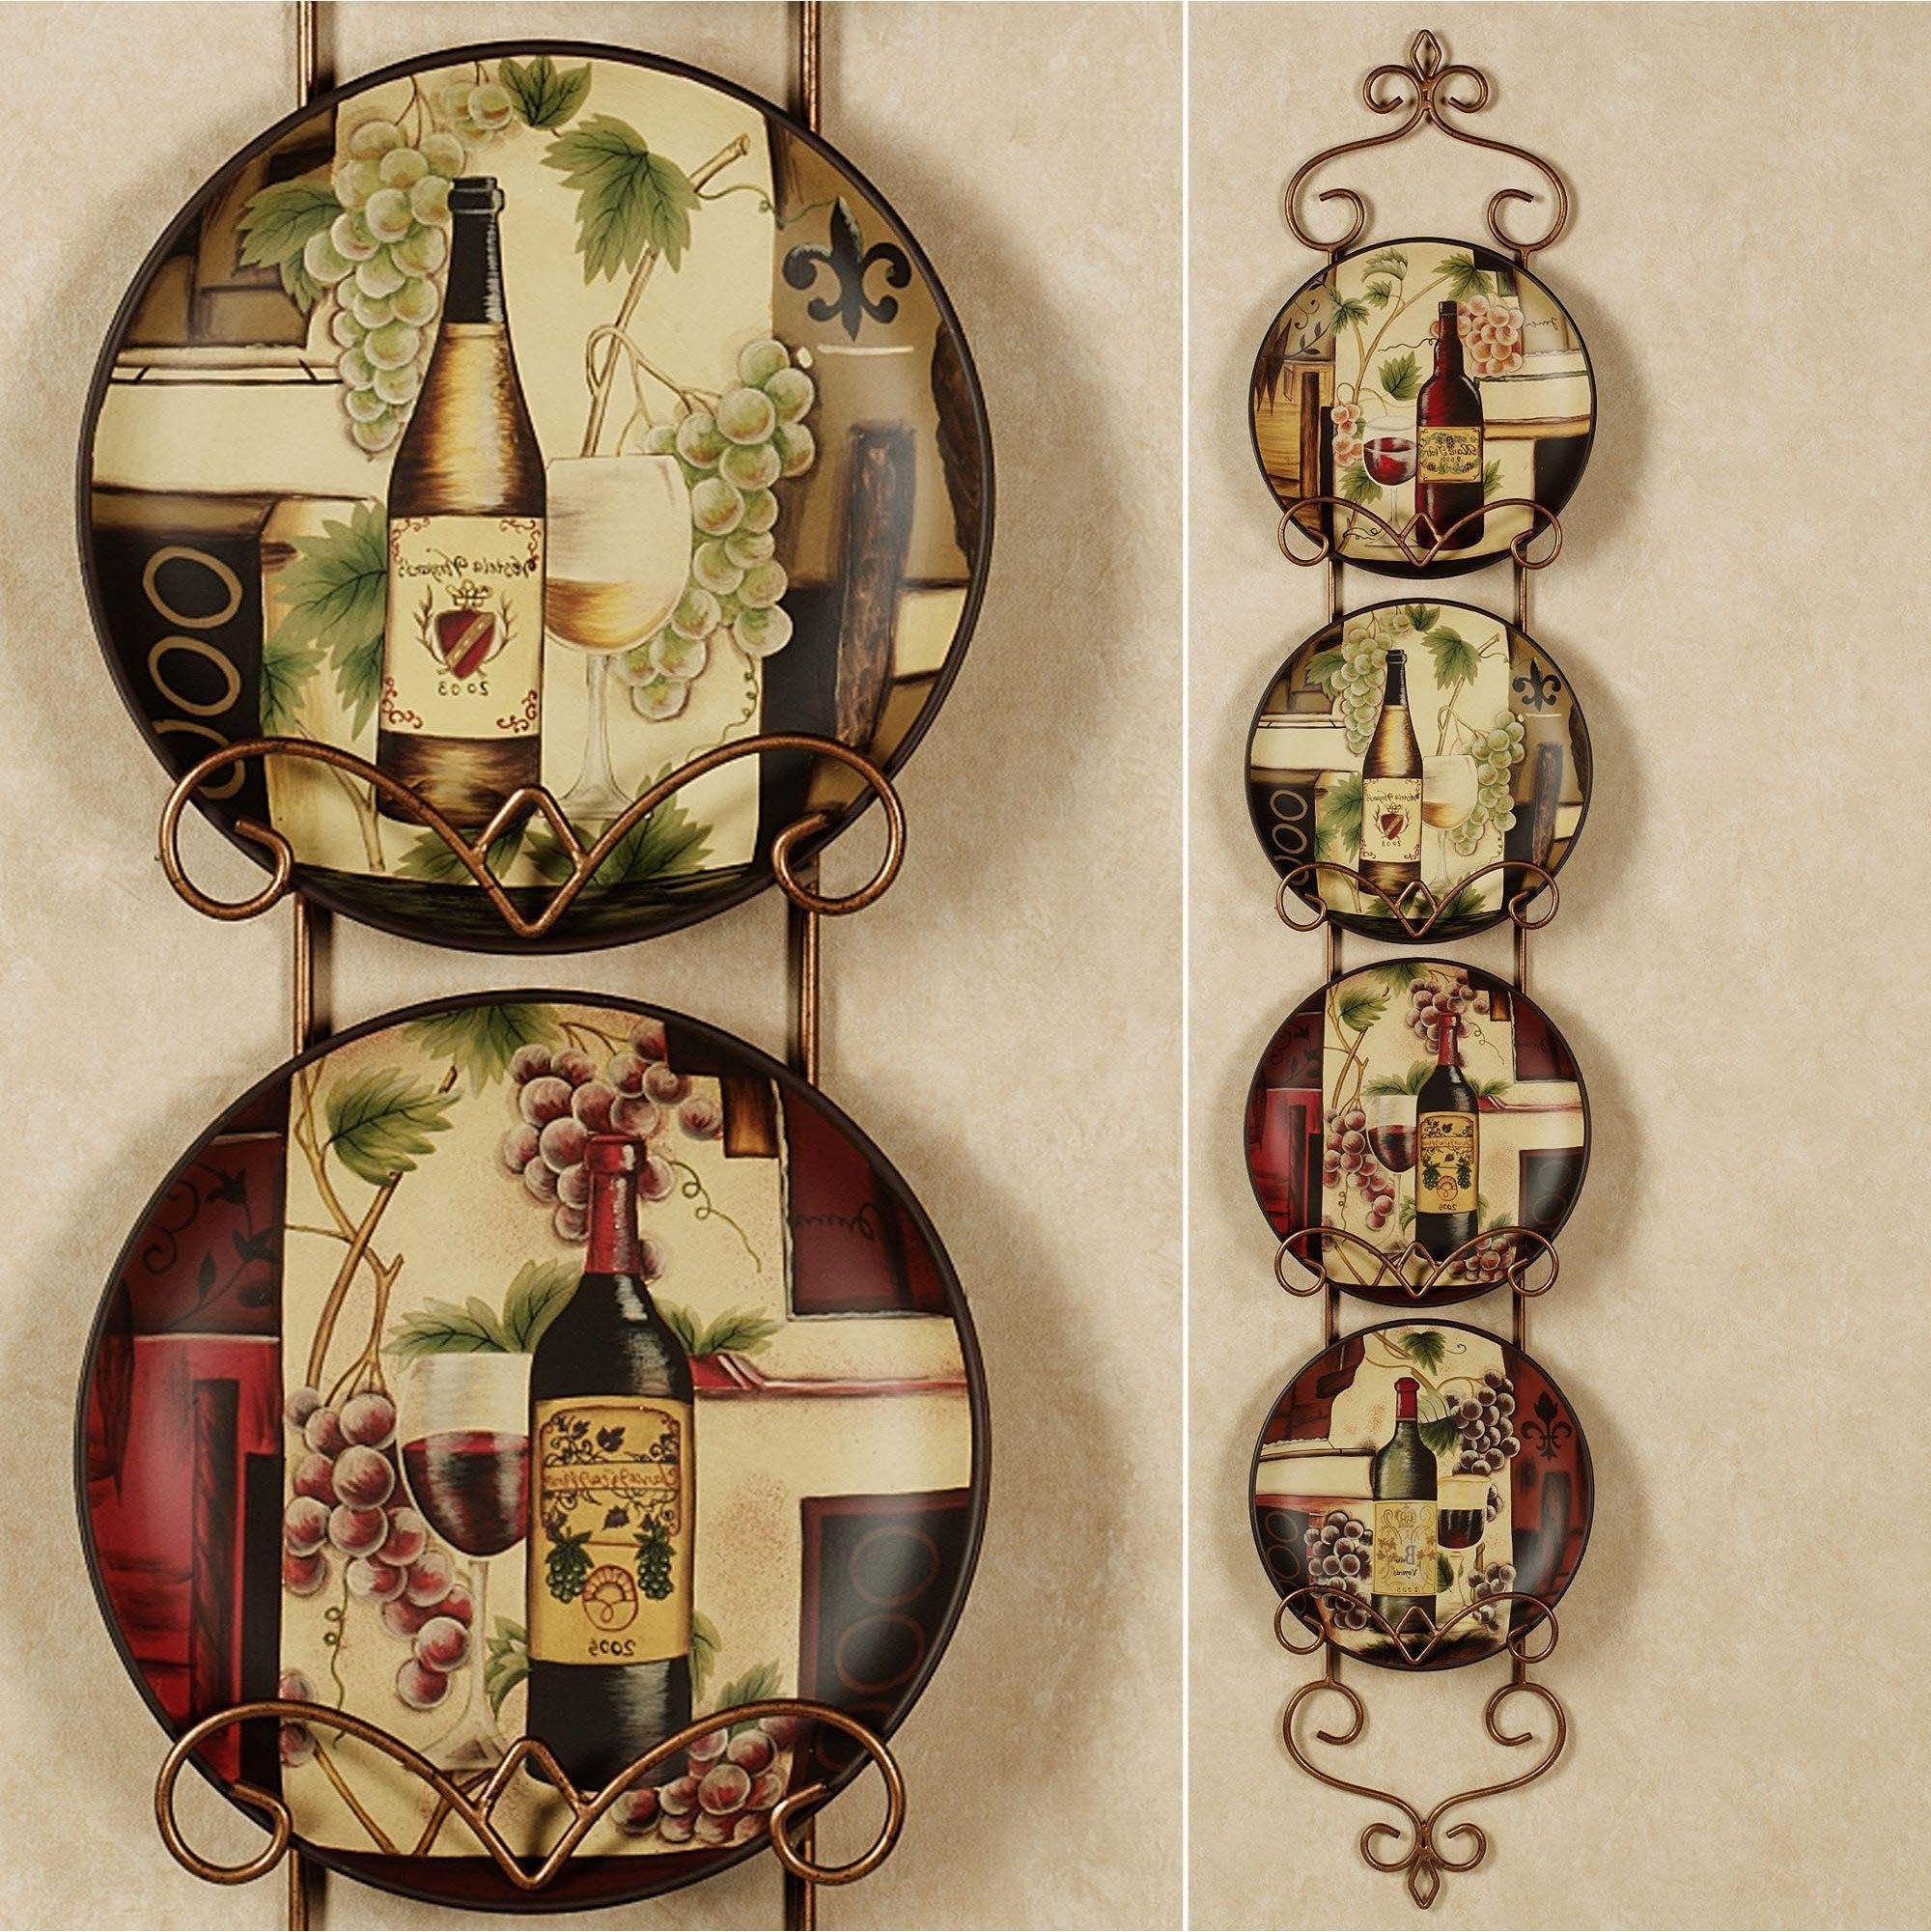 Decorative Plates For Wall Art | Best Decor Things With Decorative Plates For Wall Art (View 18 of 20)